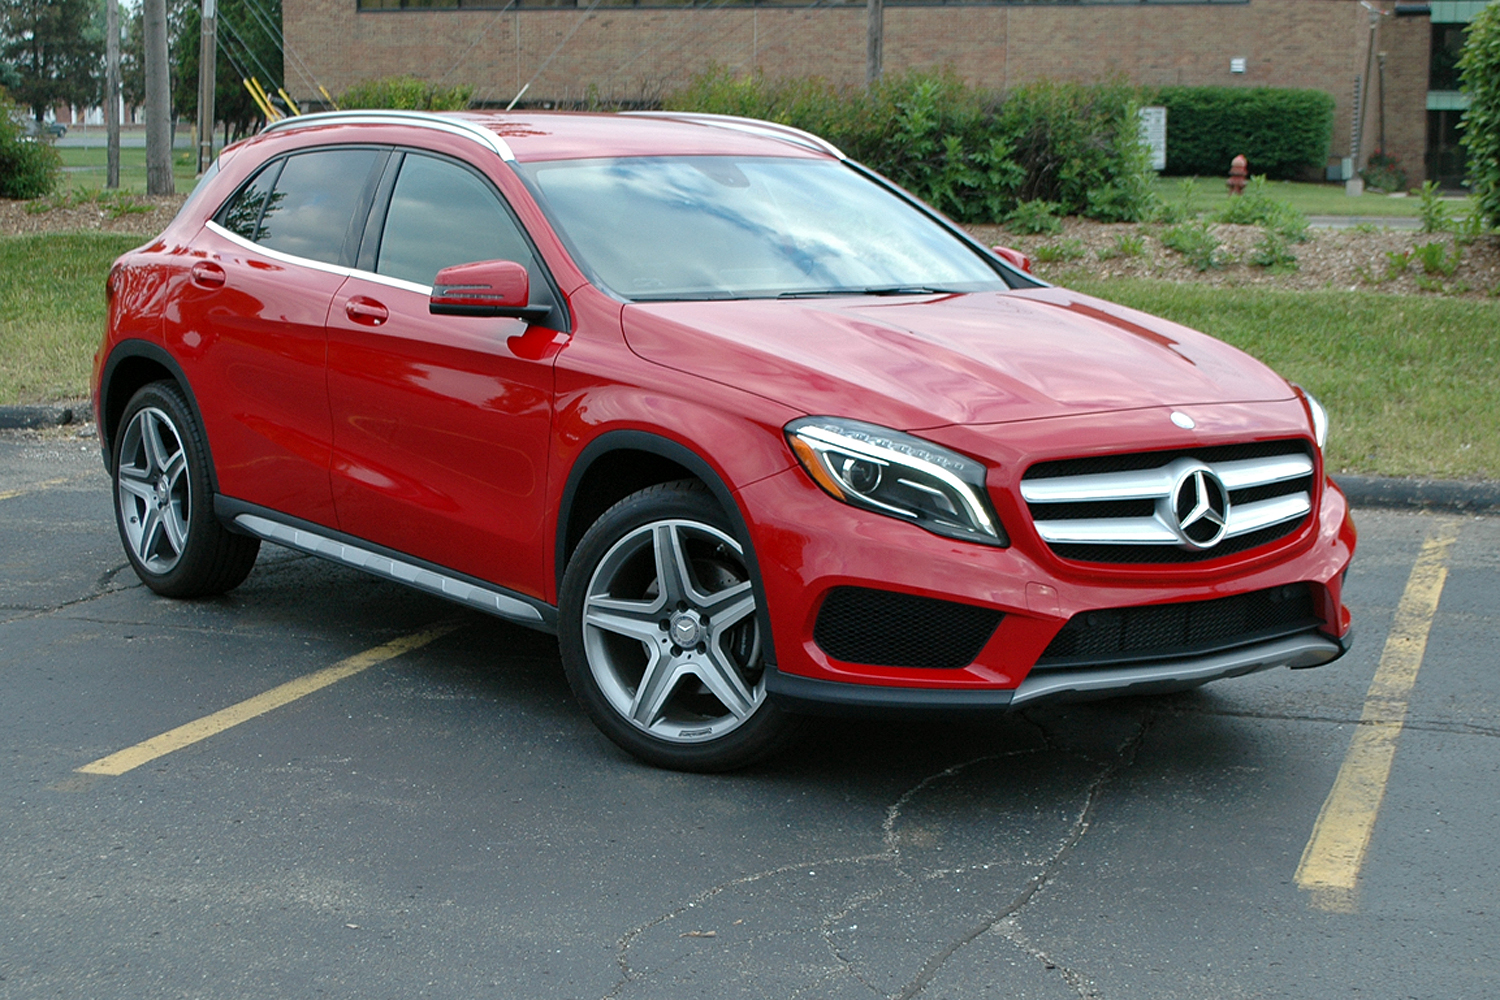 2015 mercedes gla 250 - driven | top speed